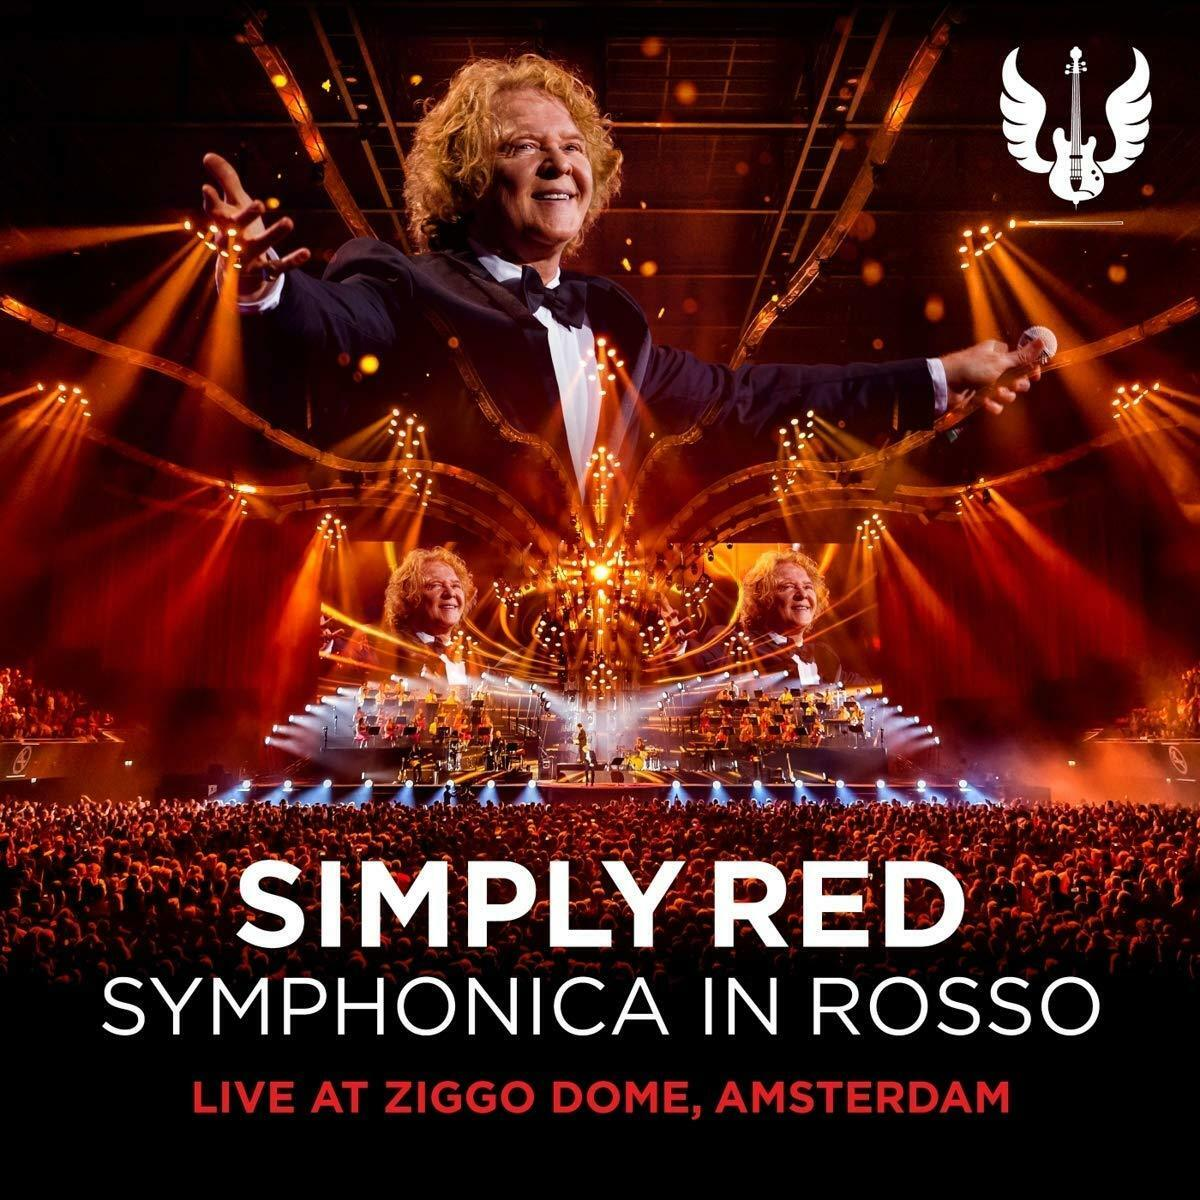 simply red symphonica in rosso cd dvd 2018. Black Bedroom Furniture Sets. Home Design Ideas